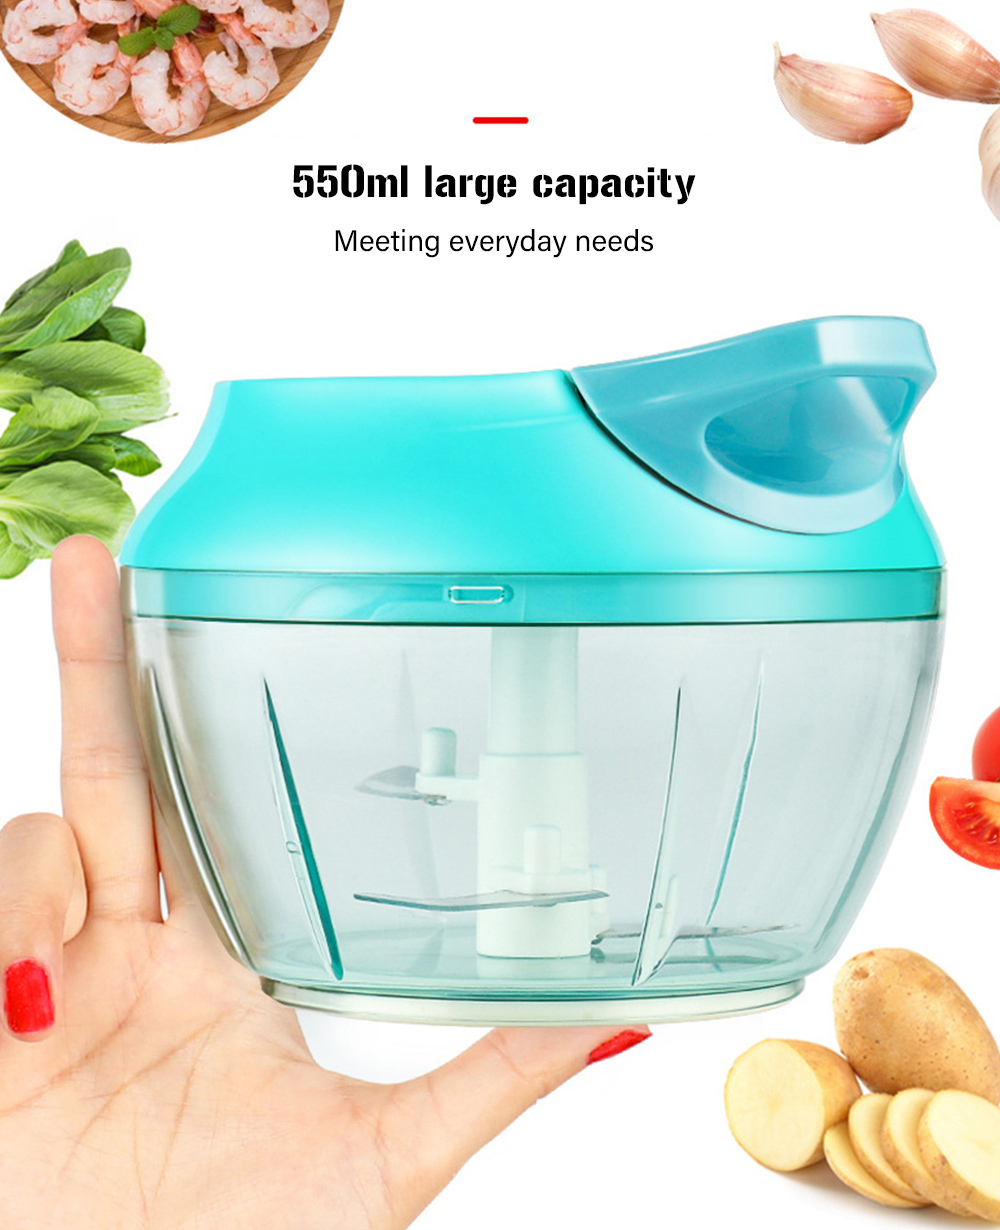 Pull String Chopper Manual Food Processor for Fruits Vegetables- Macaw Blue Green